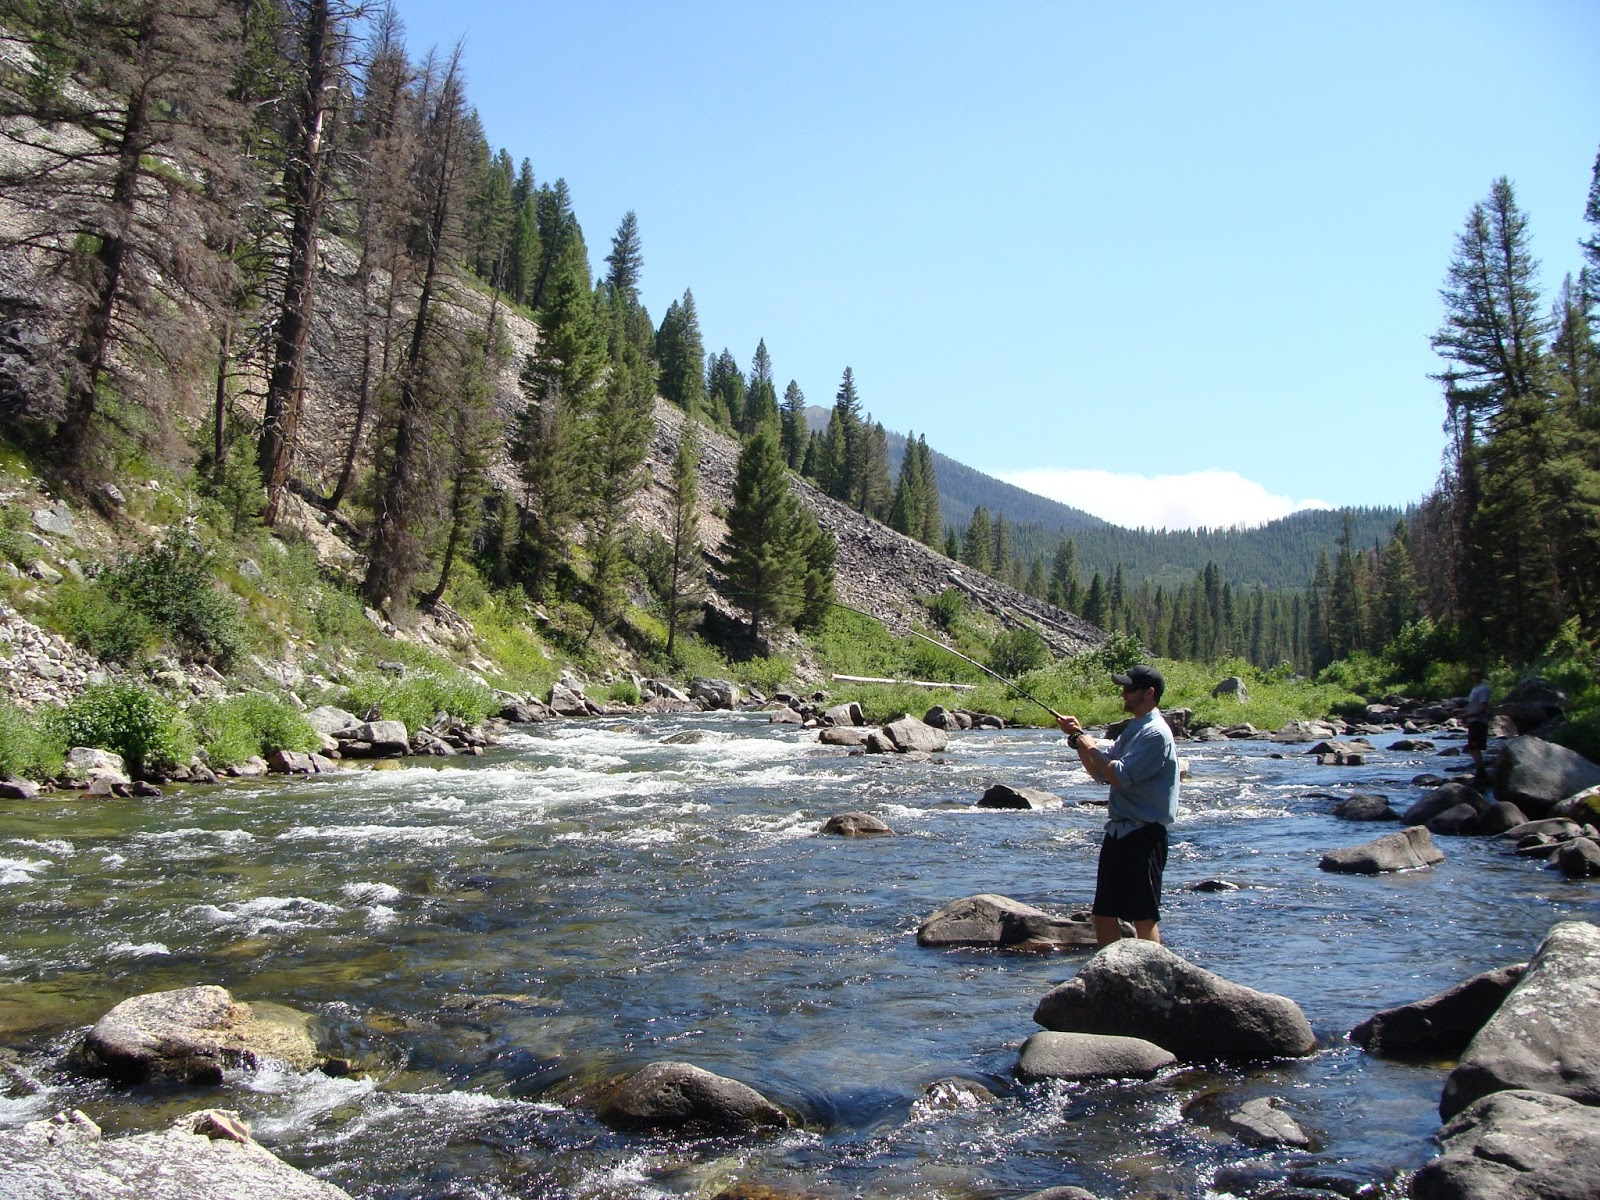 Outdoor doer fly fishing middle fork of the salmon river for Fly fishing boise idaho